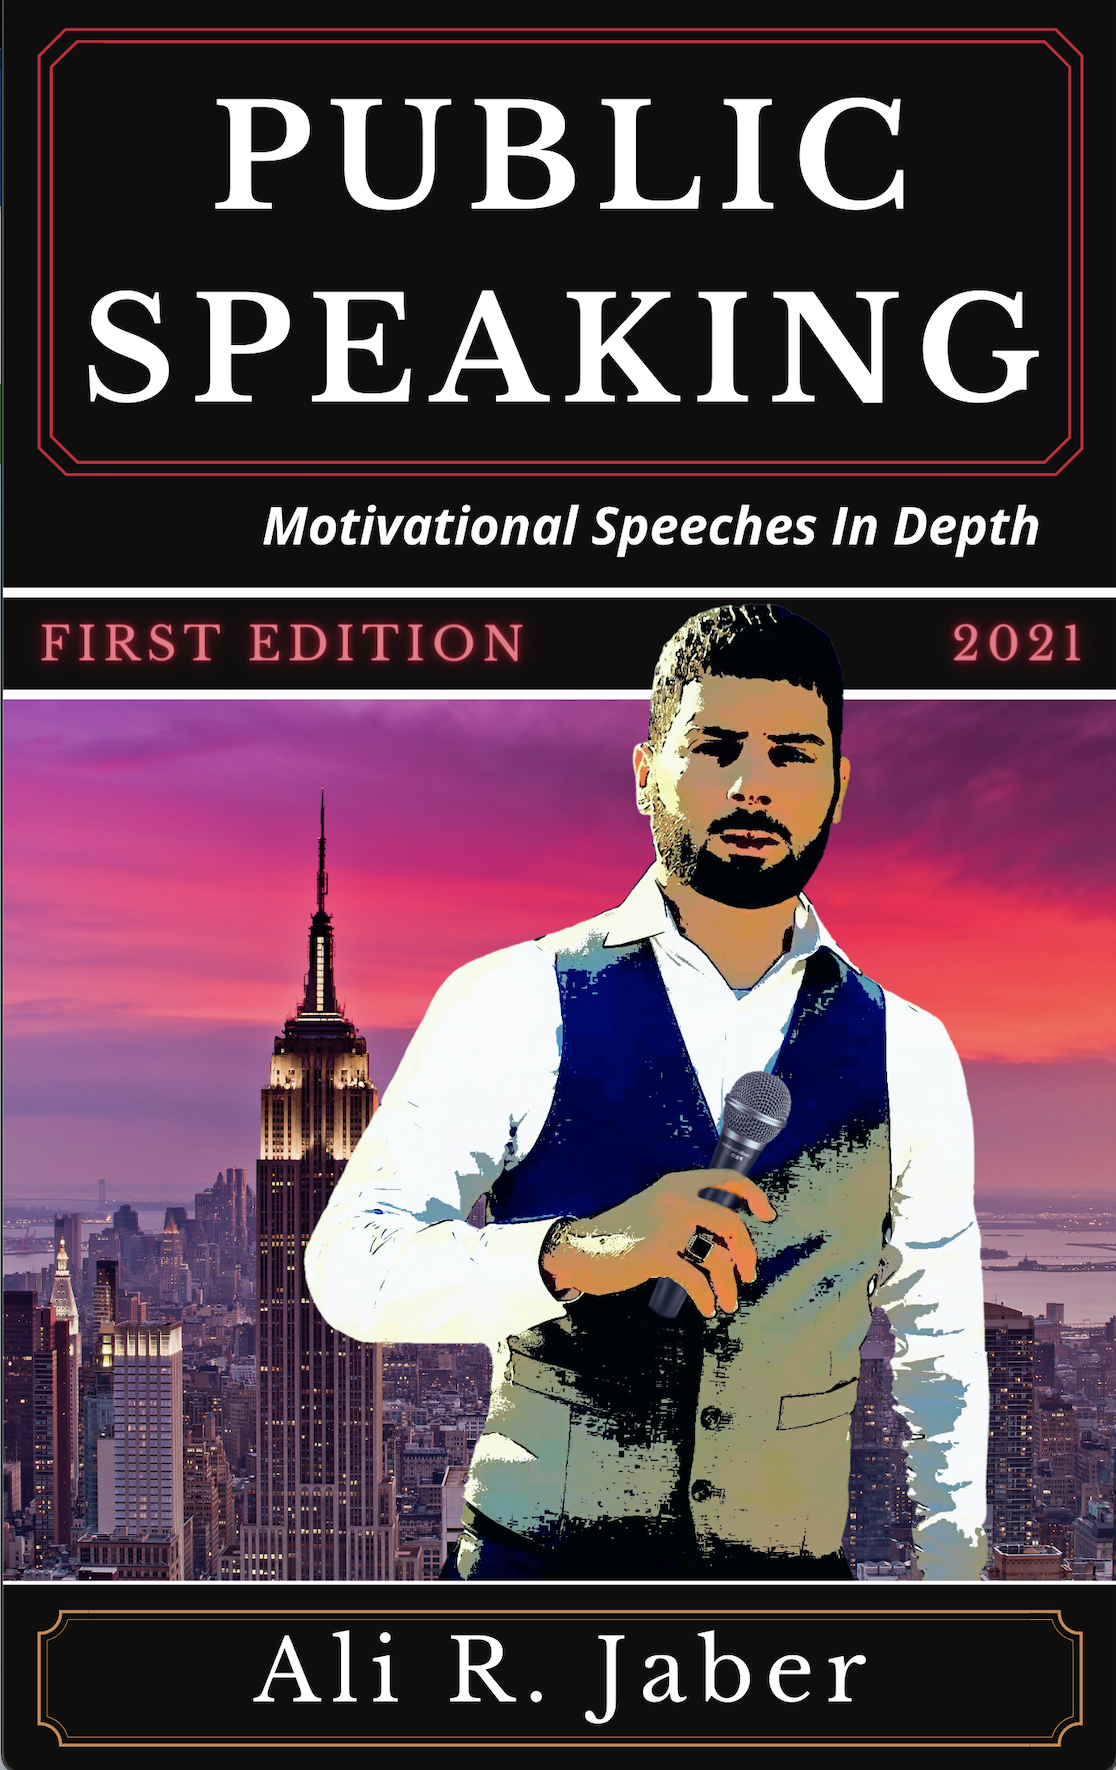 Author Ali R. Jaber, The Pride of Lebanon Launches New Book That Focuses on the Art of Public Speaking